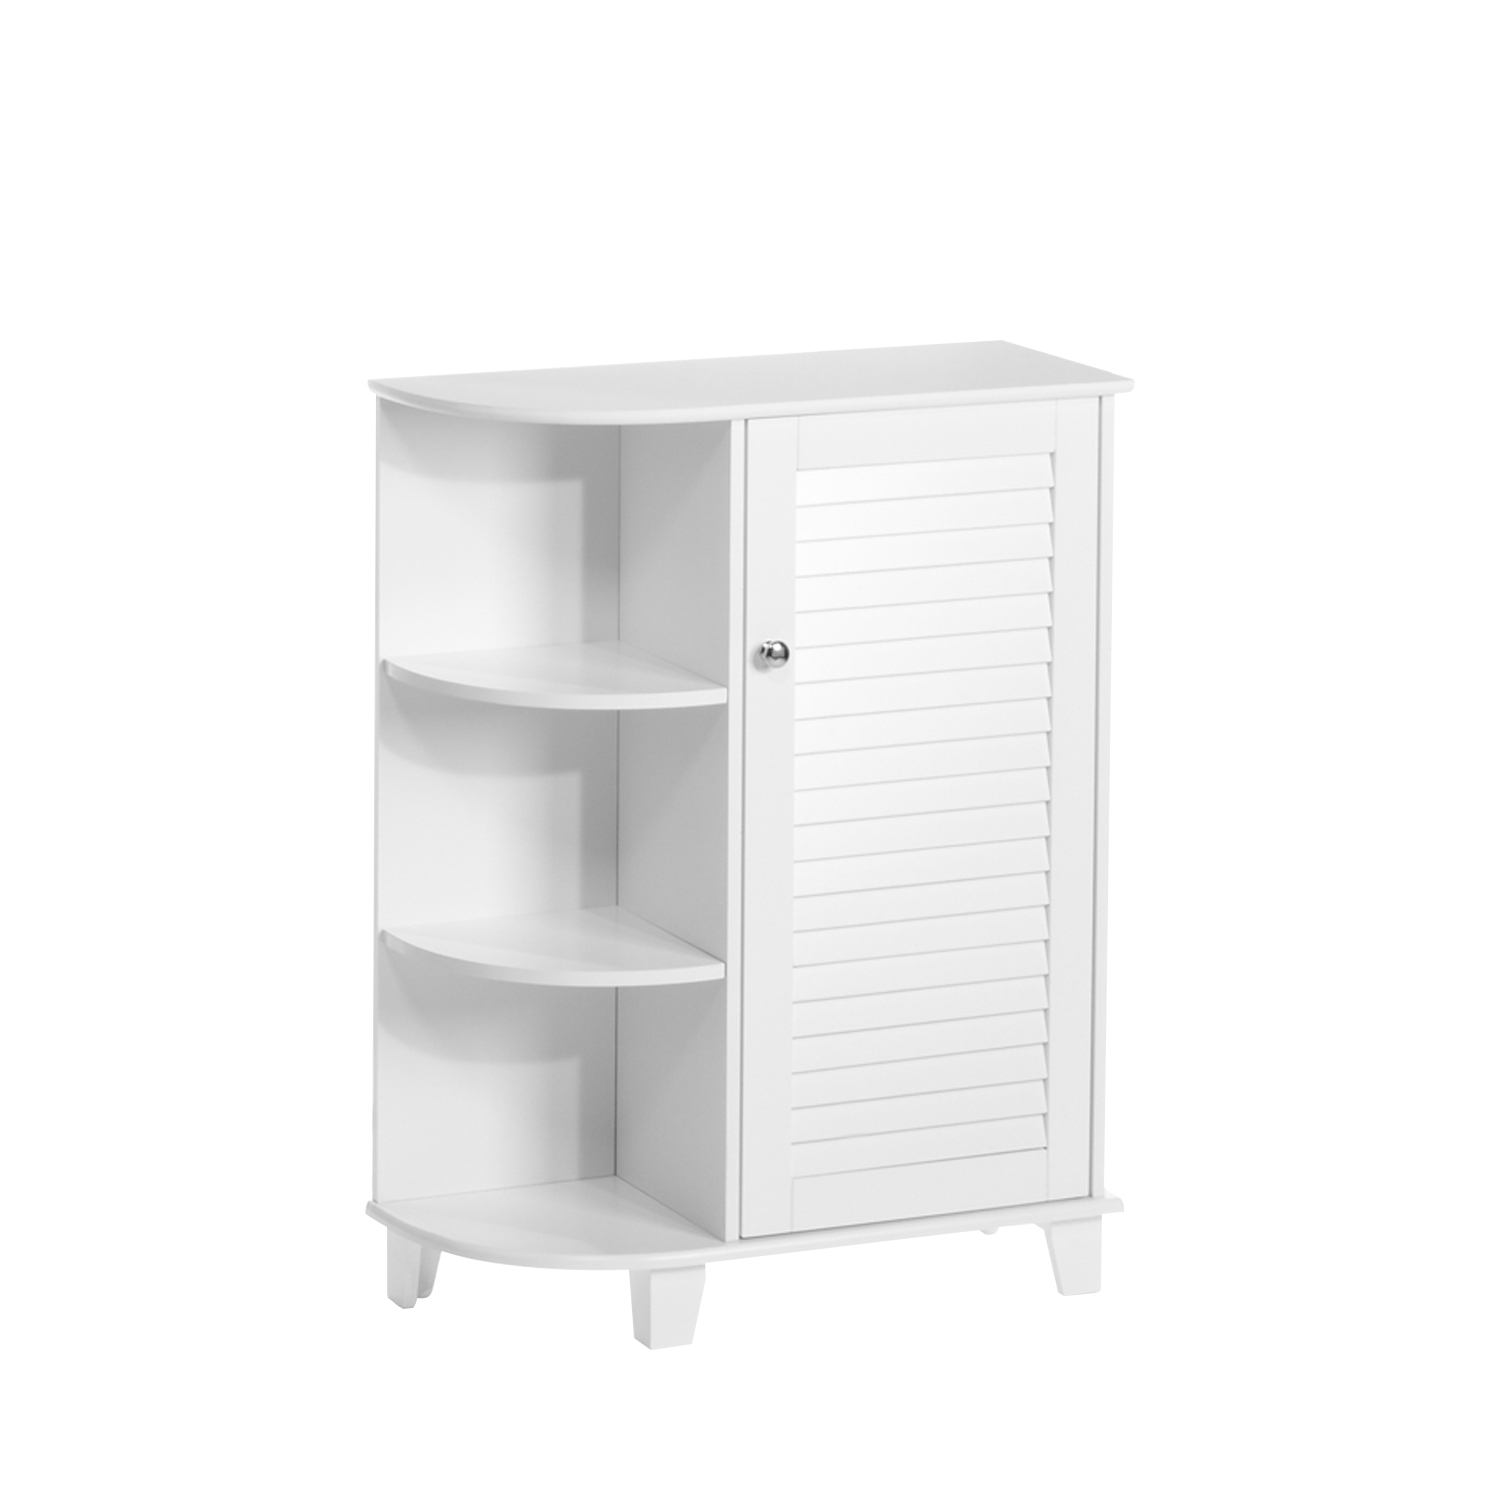 Gentil RiverRidge Home Ellsworth Collection   Floor Cabinet With Side Shelves    White